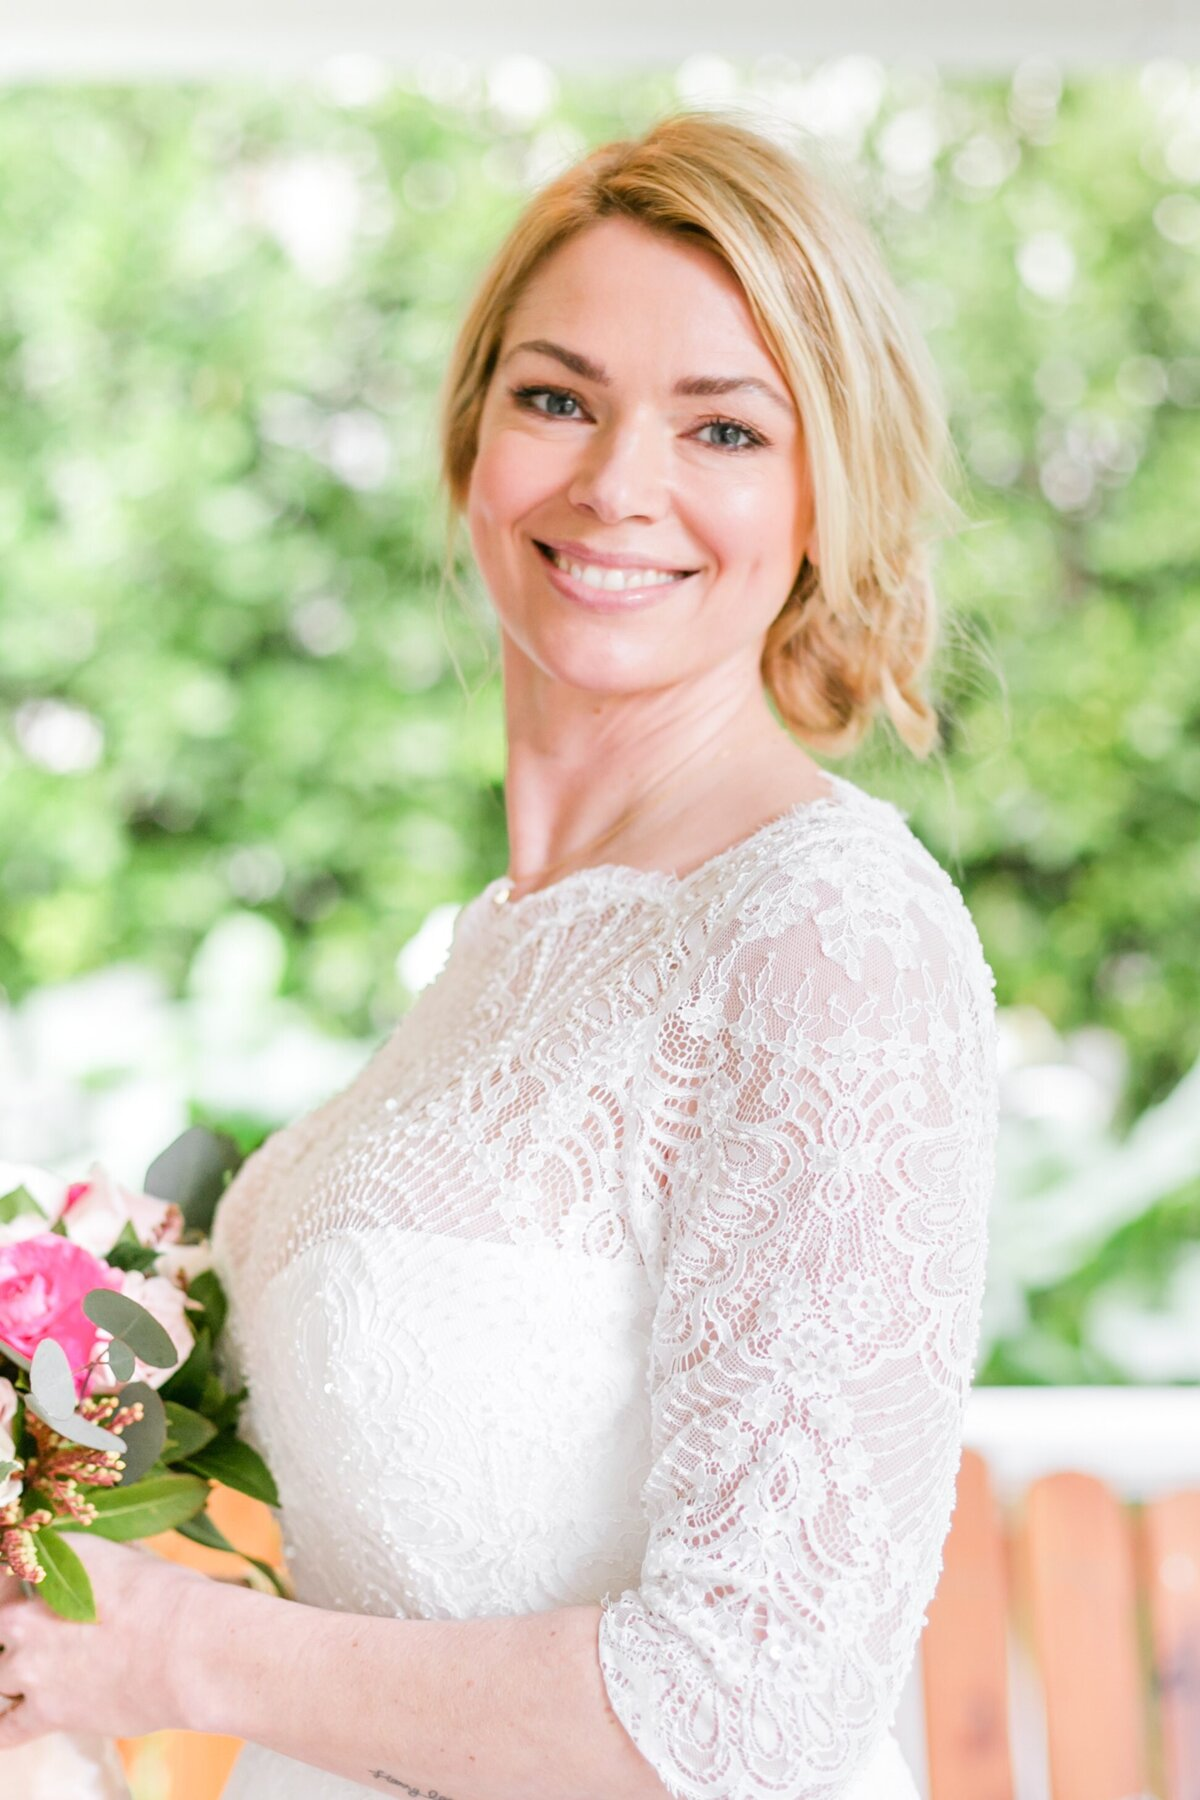 KelliBeePhotography_Vow-Renewal-Hollywood-Hills-Los-Angeles-Bluebell-events-0011